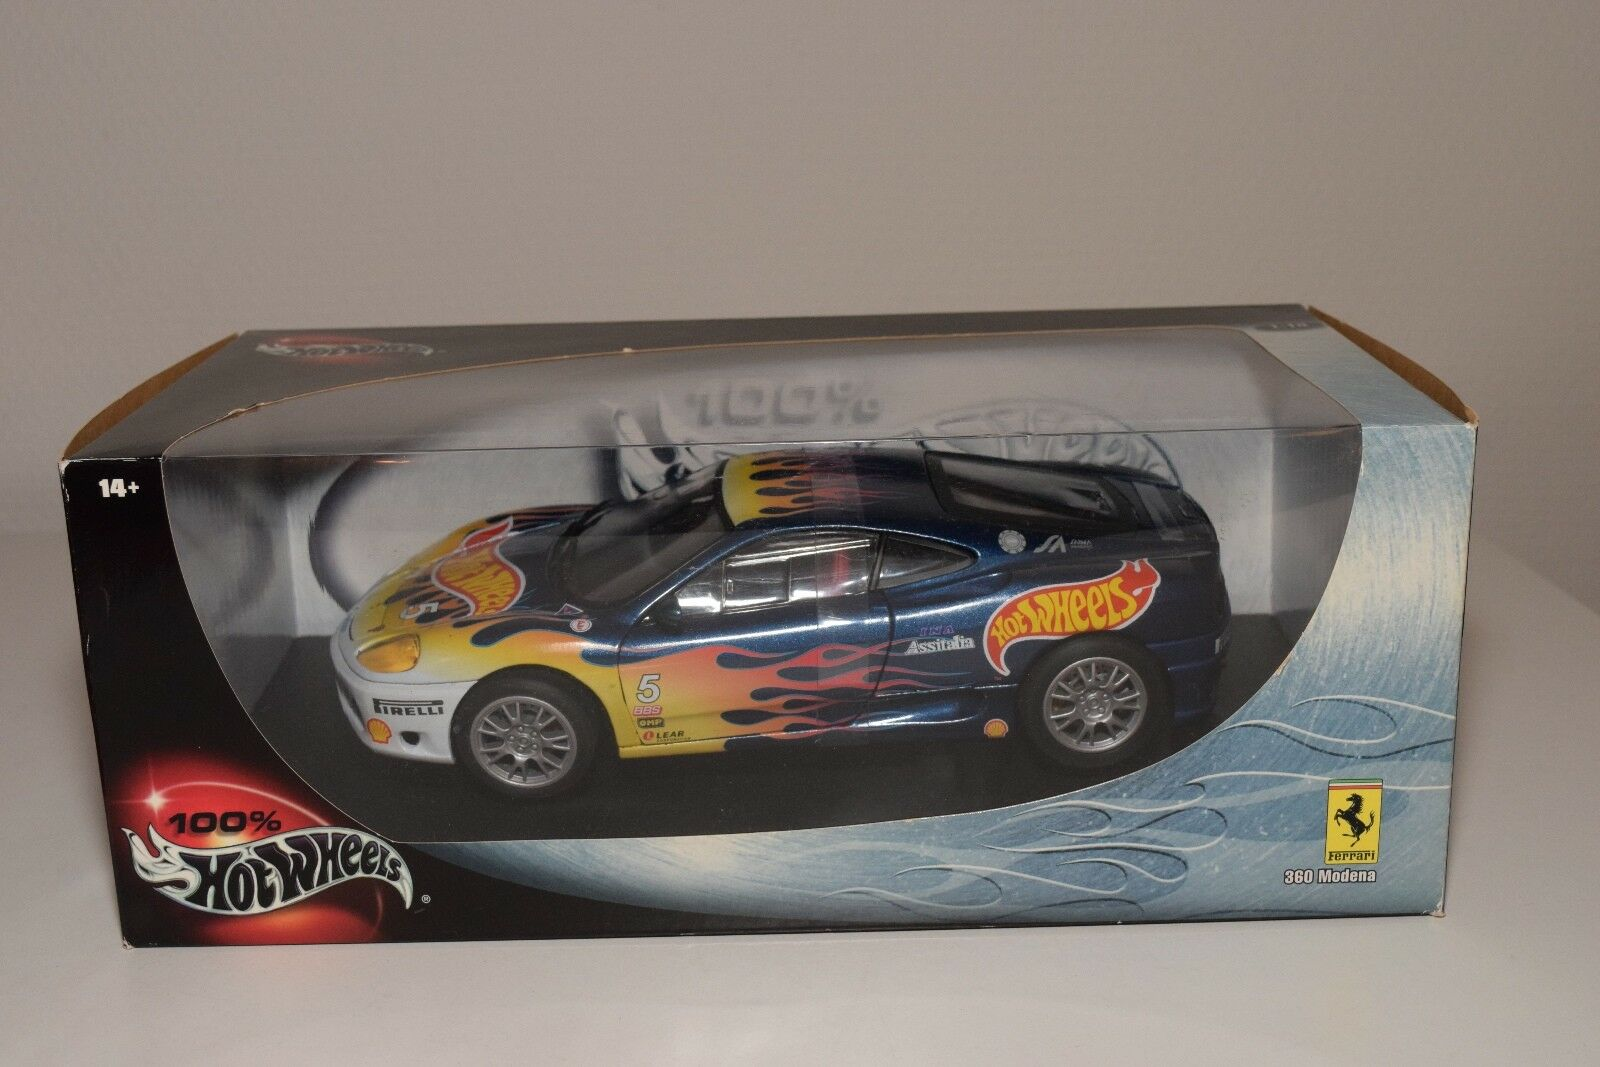 V 1 18 HOTWHEELS FERRARI 360 MODENA RACING WITH FLAMES MINT BOXED